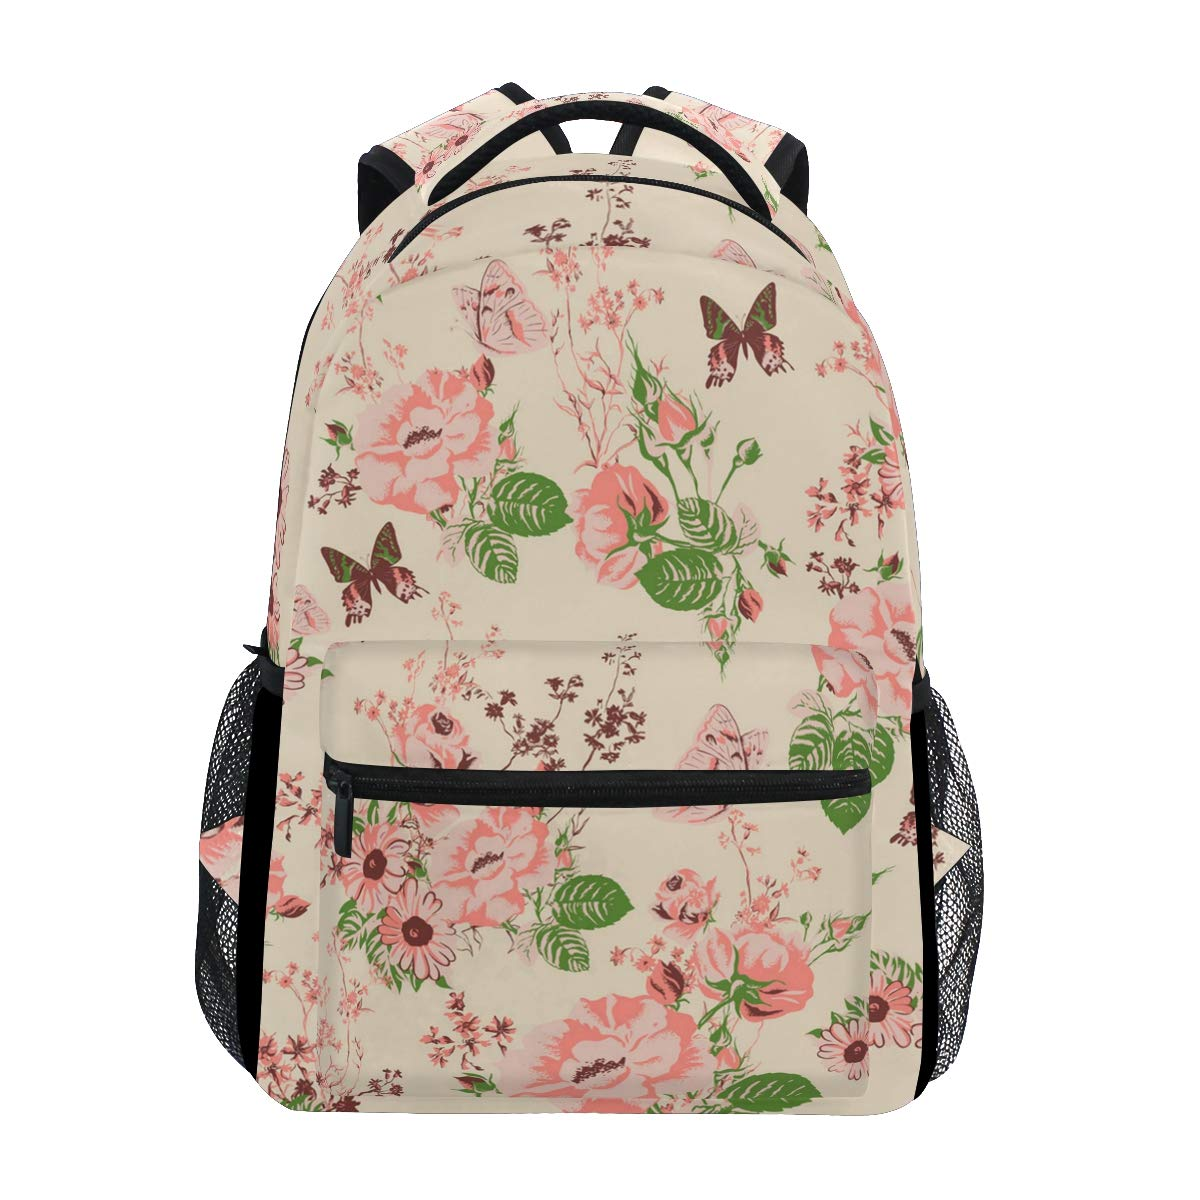 edf4869b4b8 Golden Rose Petals Trekking Backpack Fashion Backpack Oversized Backpack  Men and Women Durable Travel Computer Backpack 17 Inch Notebook Waterproof  Large ...